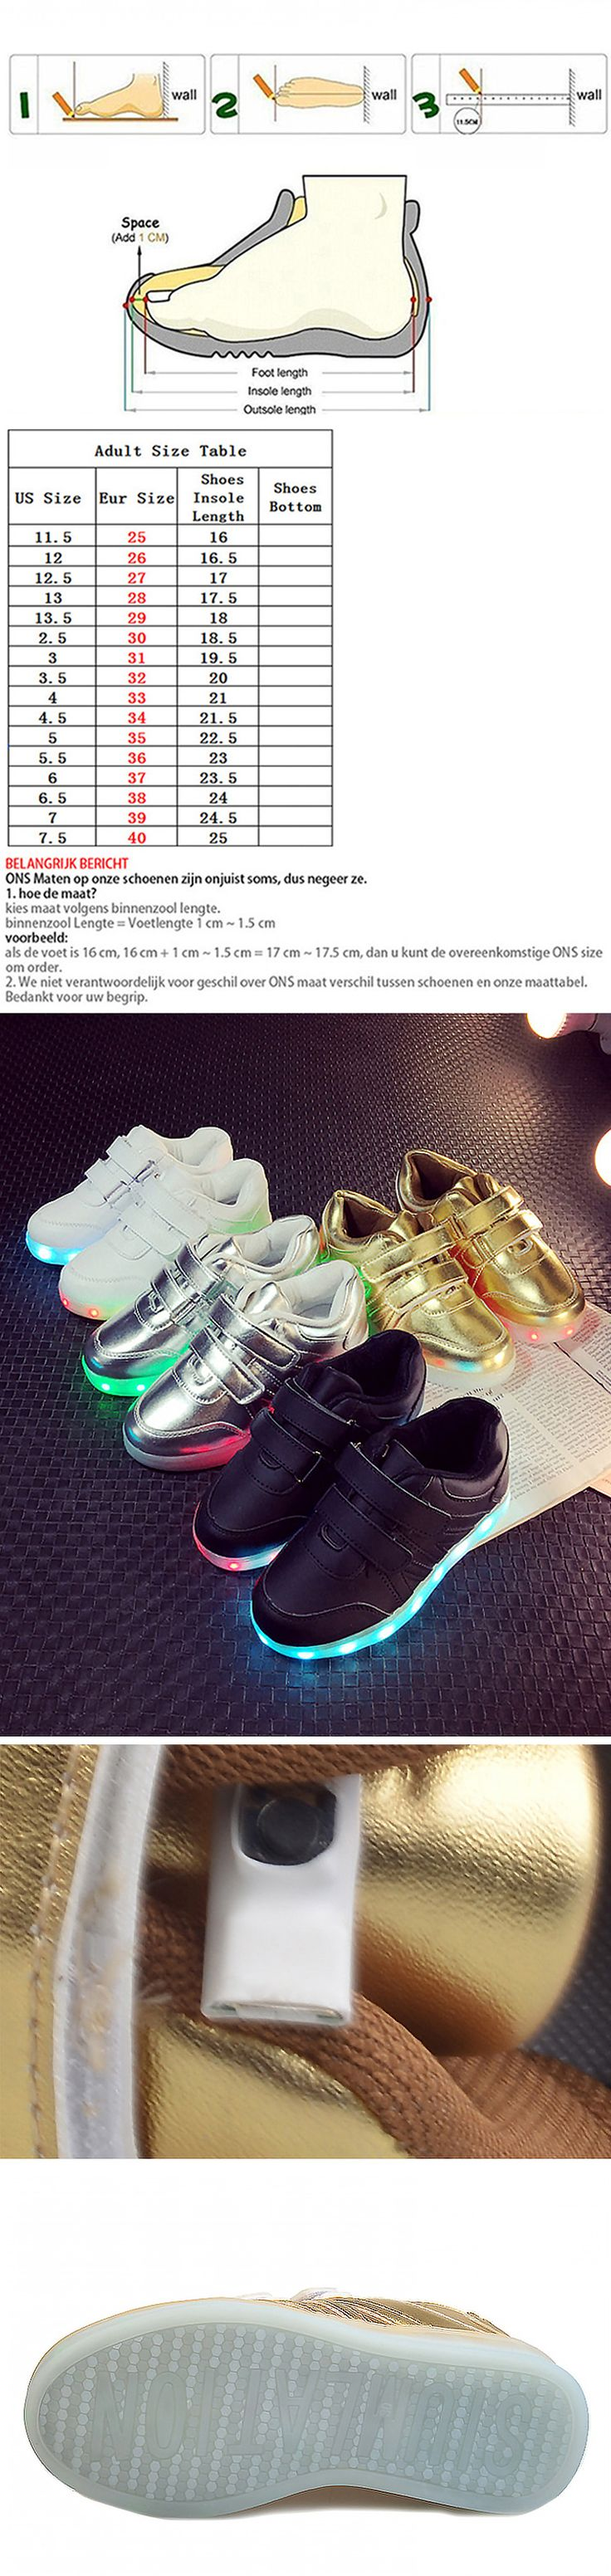 Awesome Kids Sneakers Unisex Fashion Light shoes Kids USB Charge Sole Glowing shining shoes with soles Led Luminous Shoes for boys girls - $ - Buy it Now!